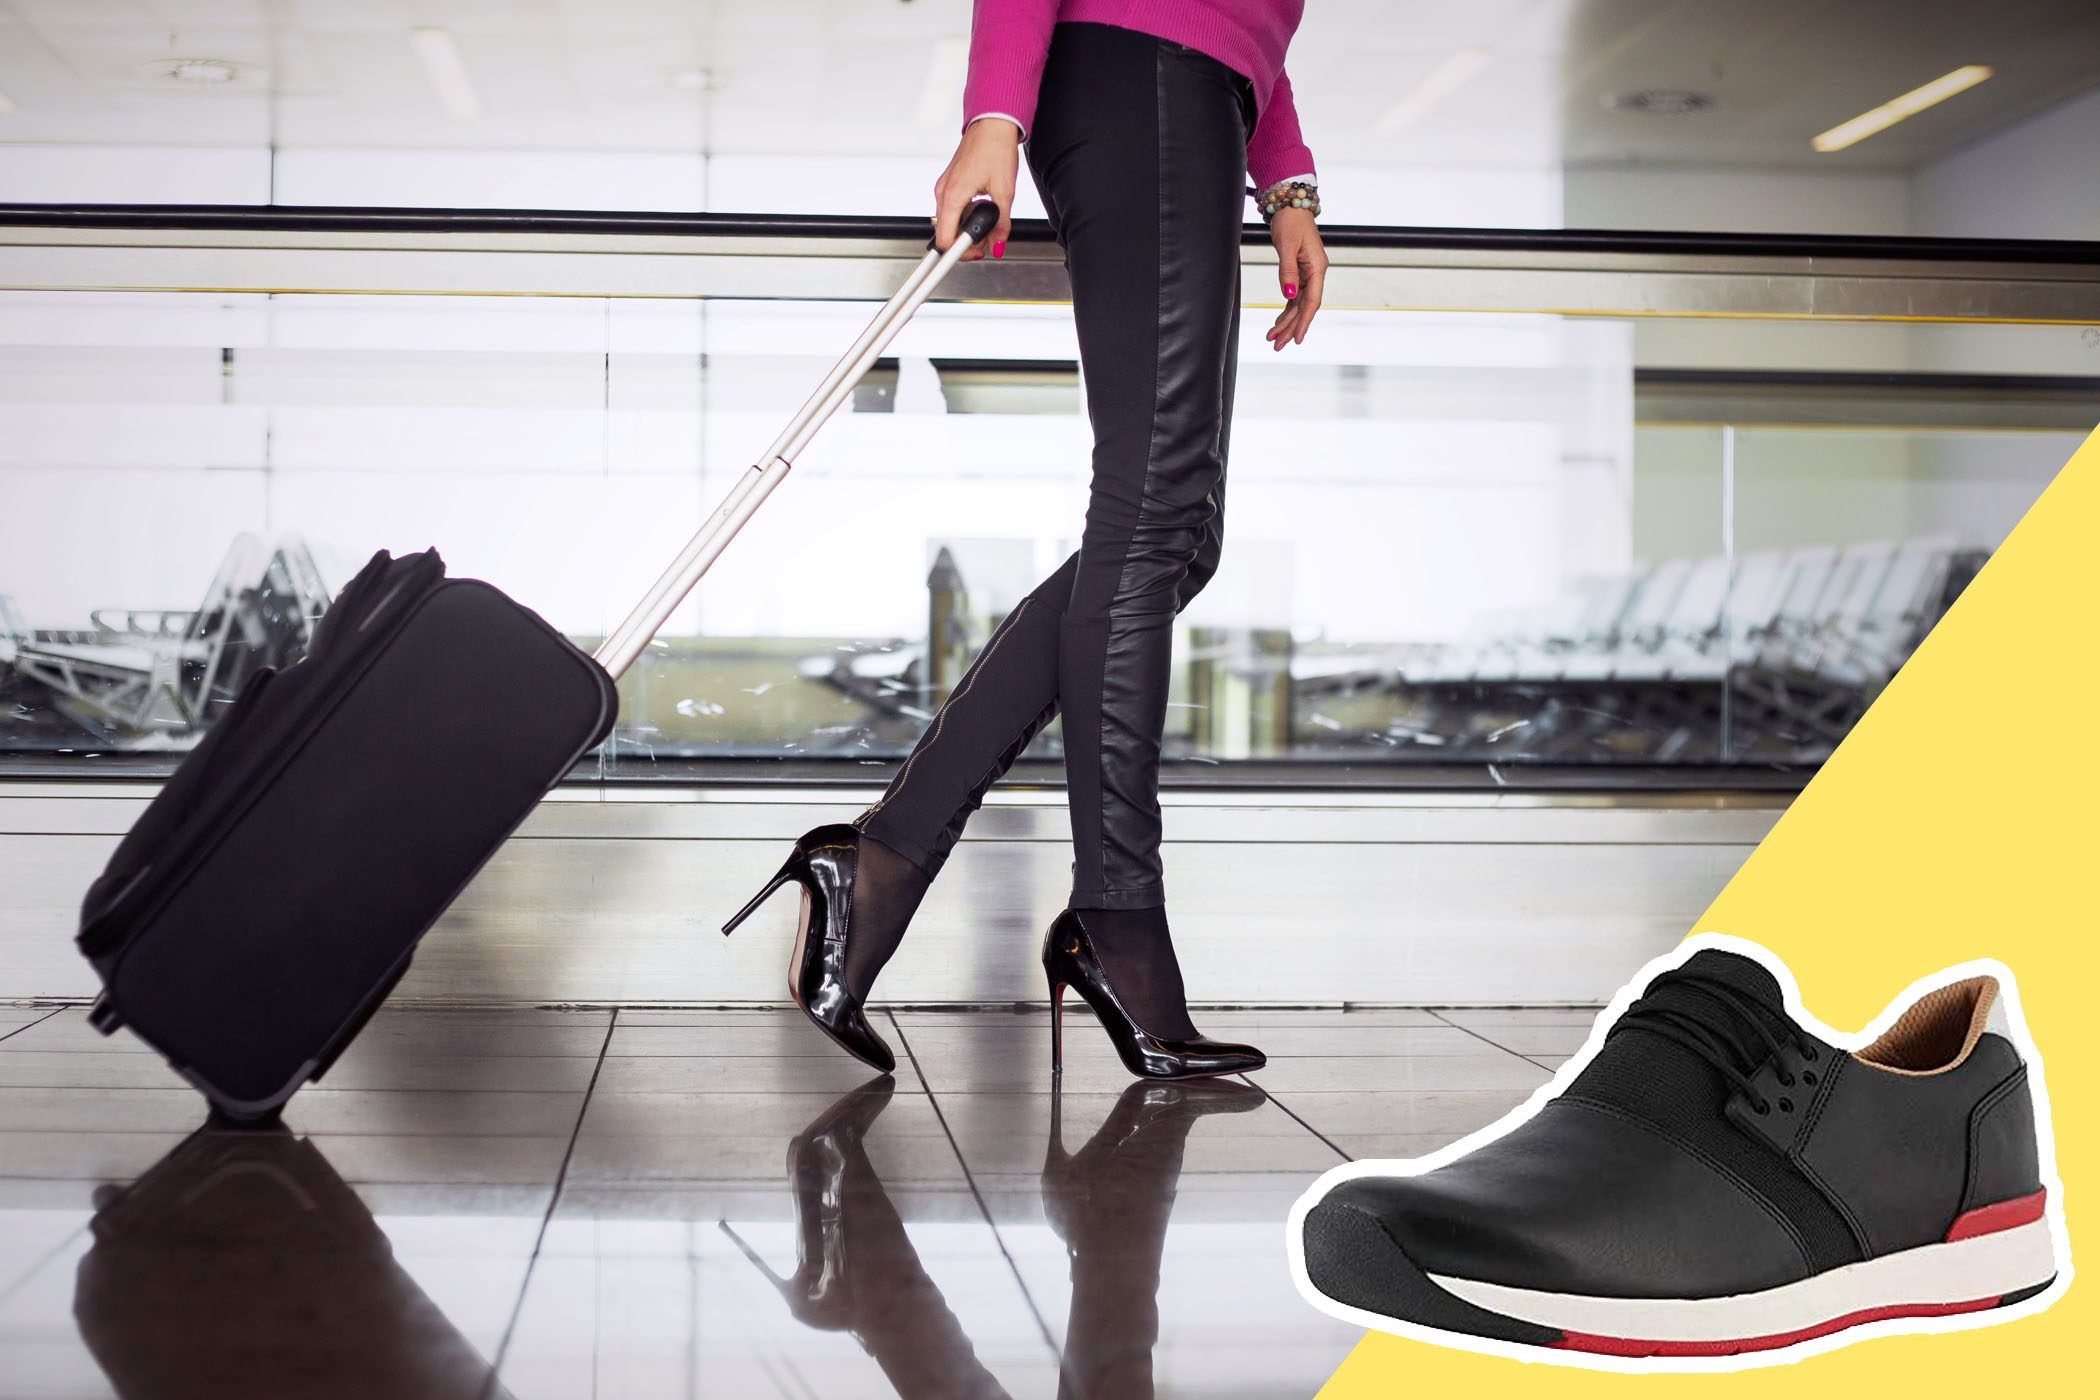 Woman wearing high heels in airport with inset of sneakers